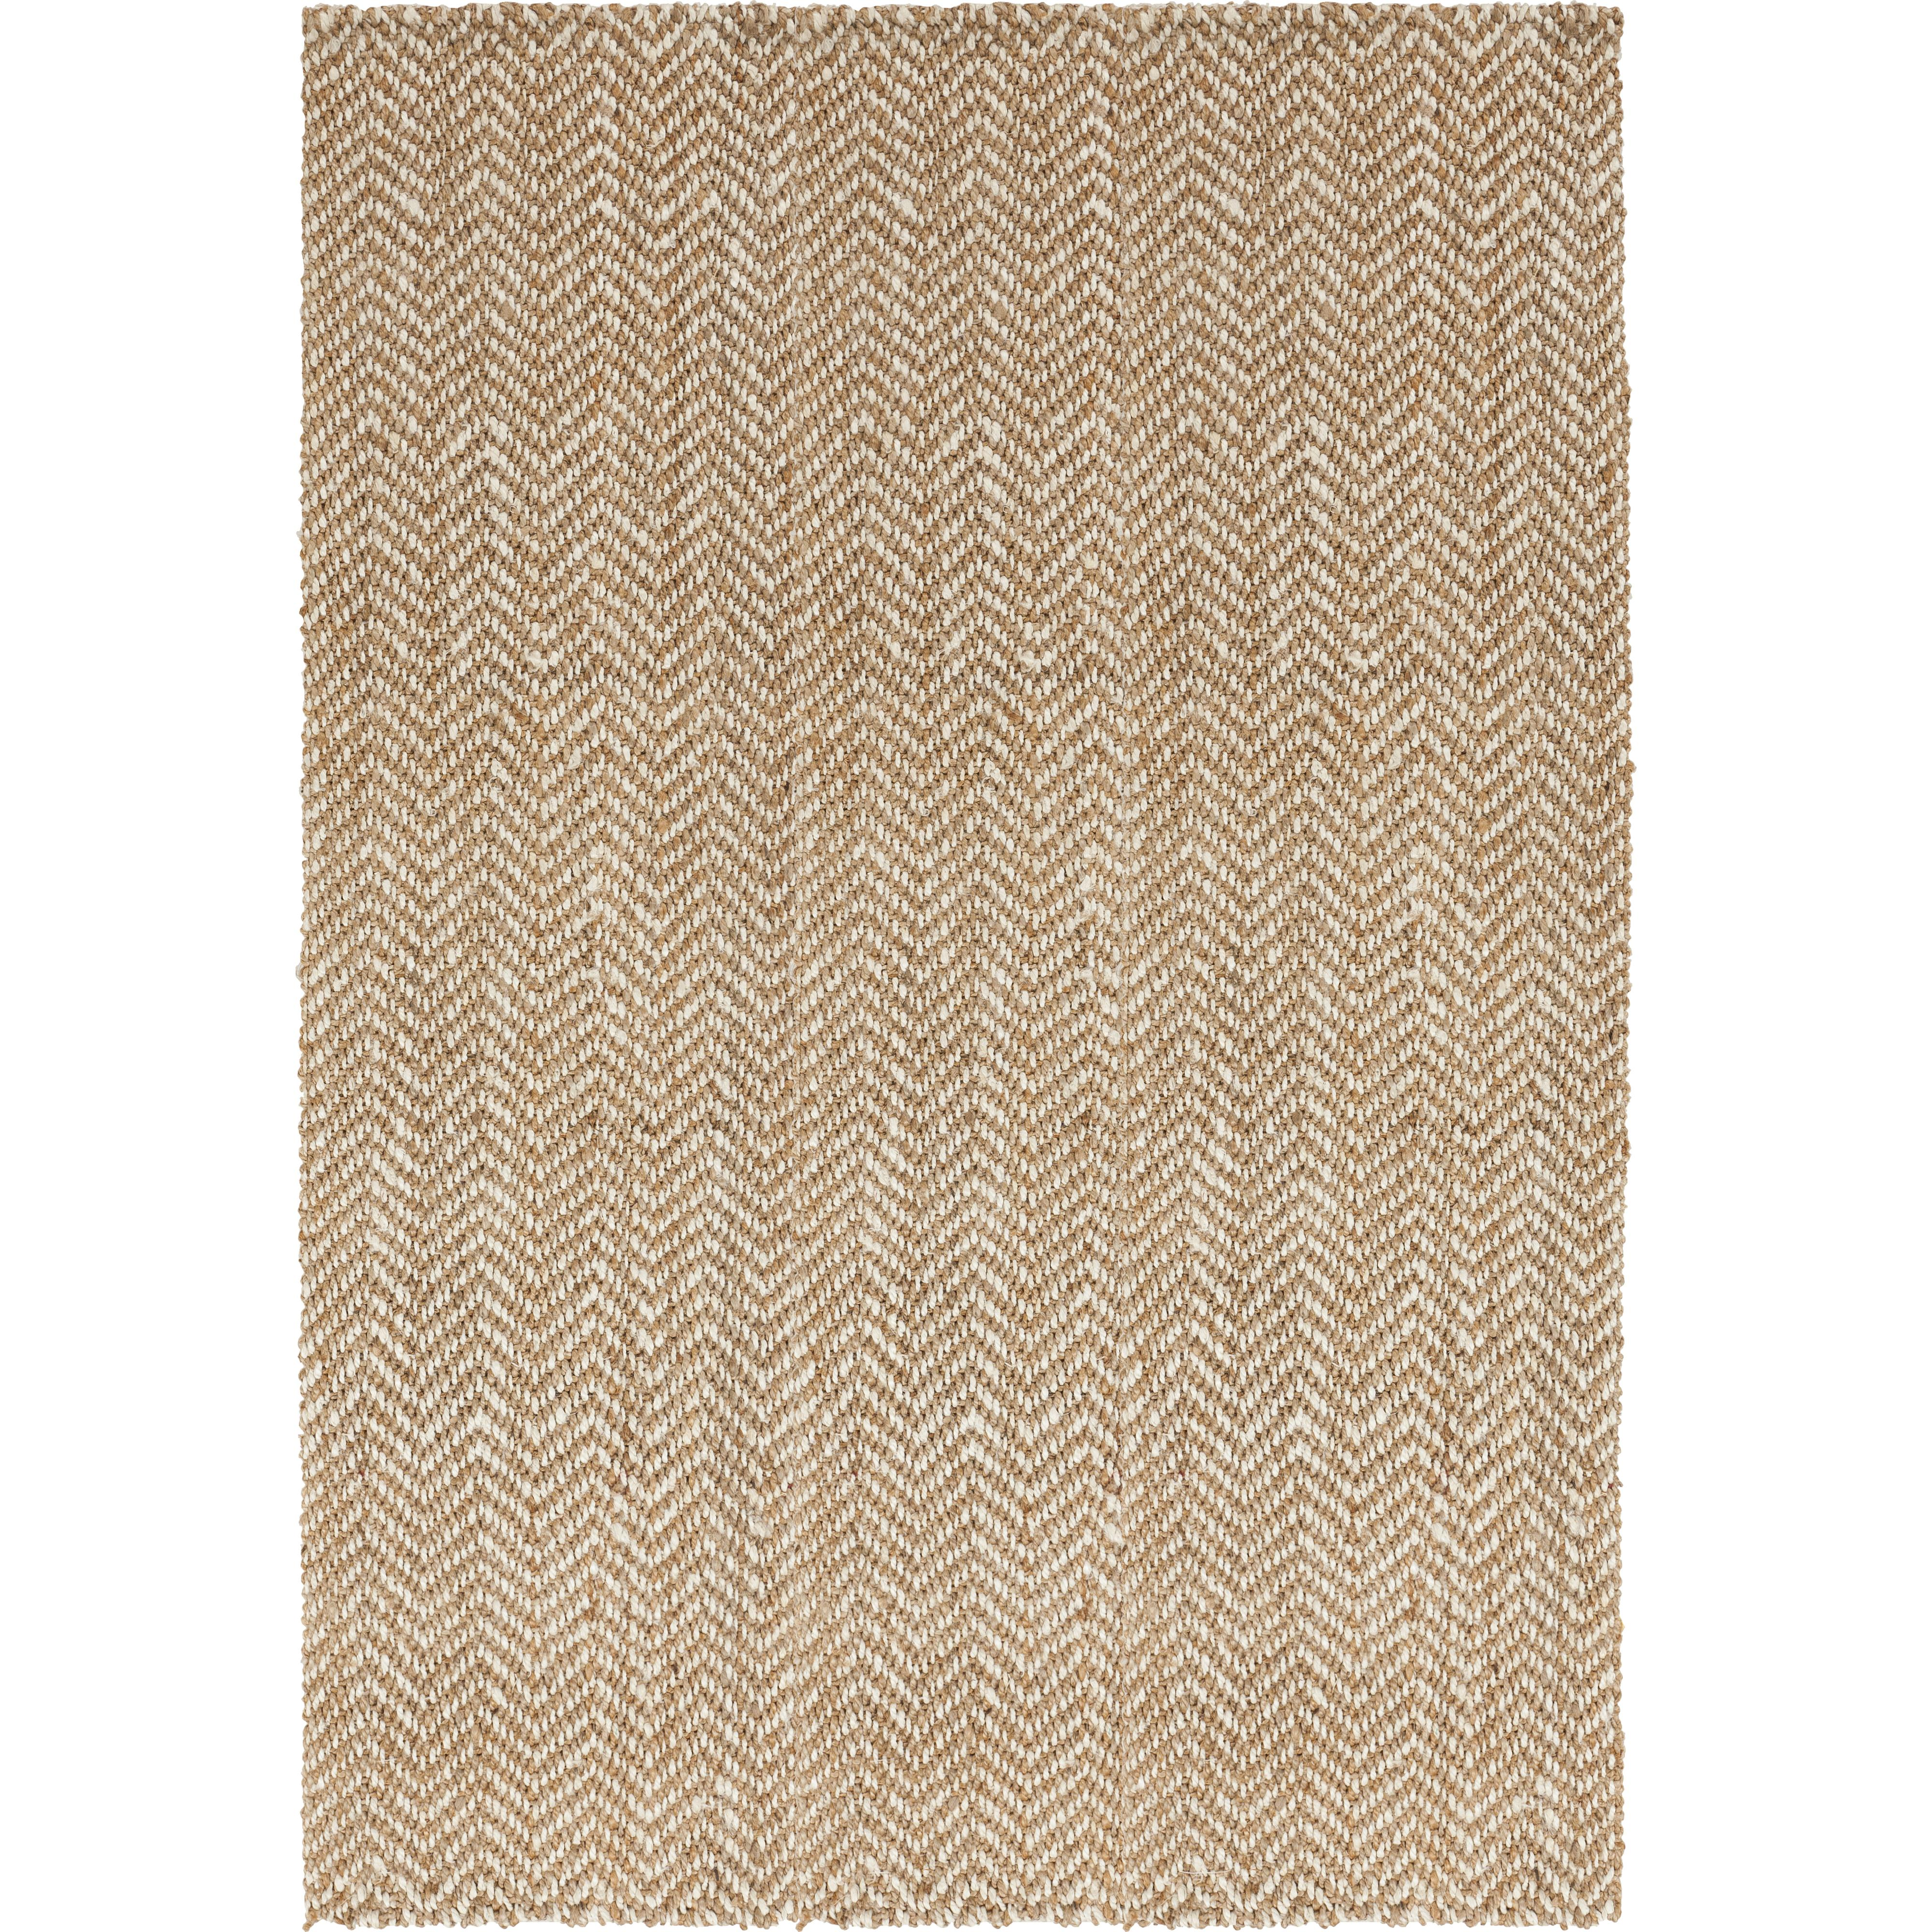 Reeds 2' x 3' by Ruby-Gordon Accents at Ruby Gordon Home